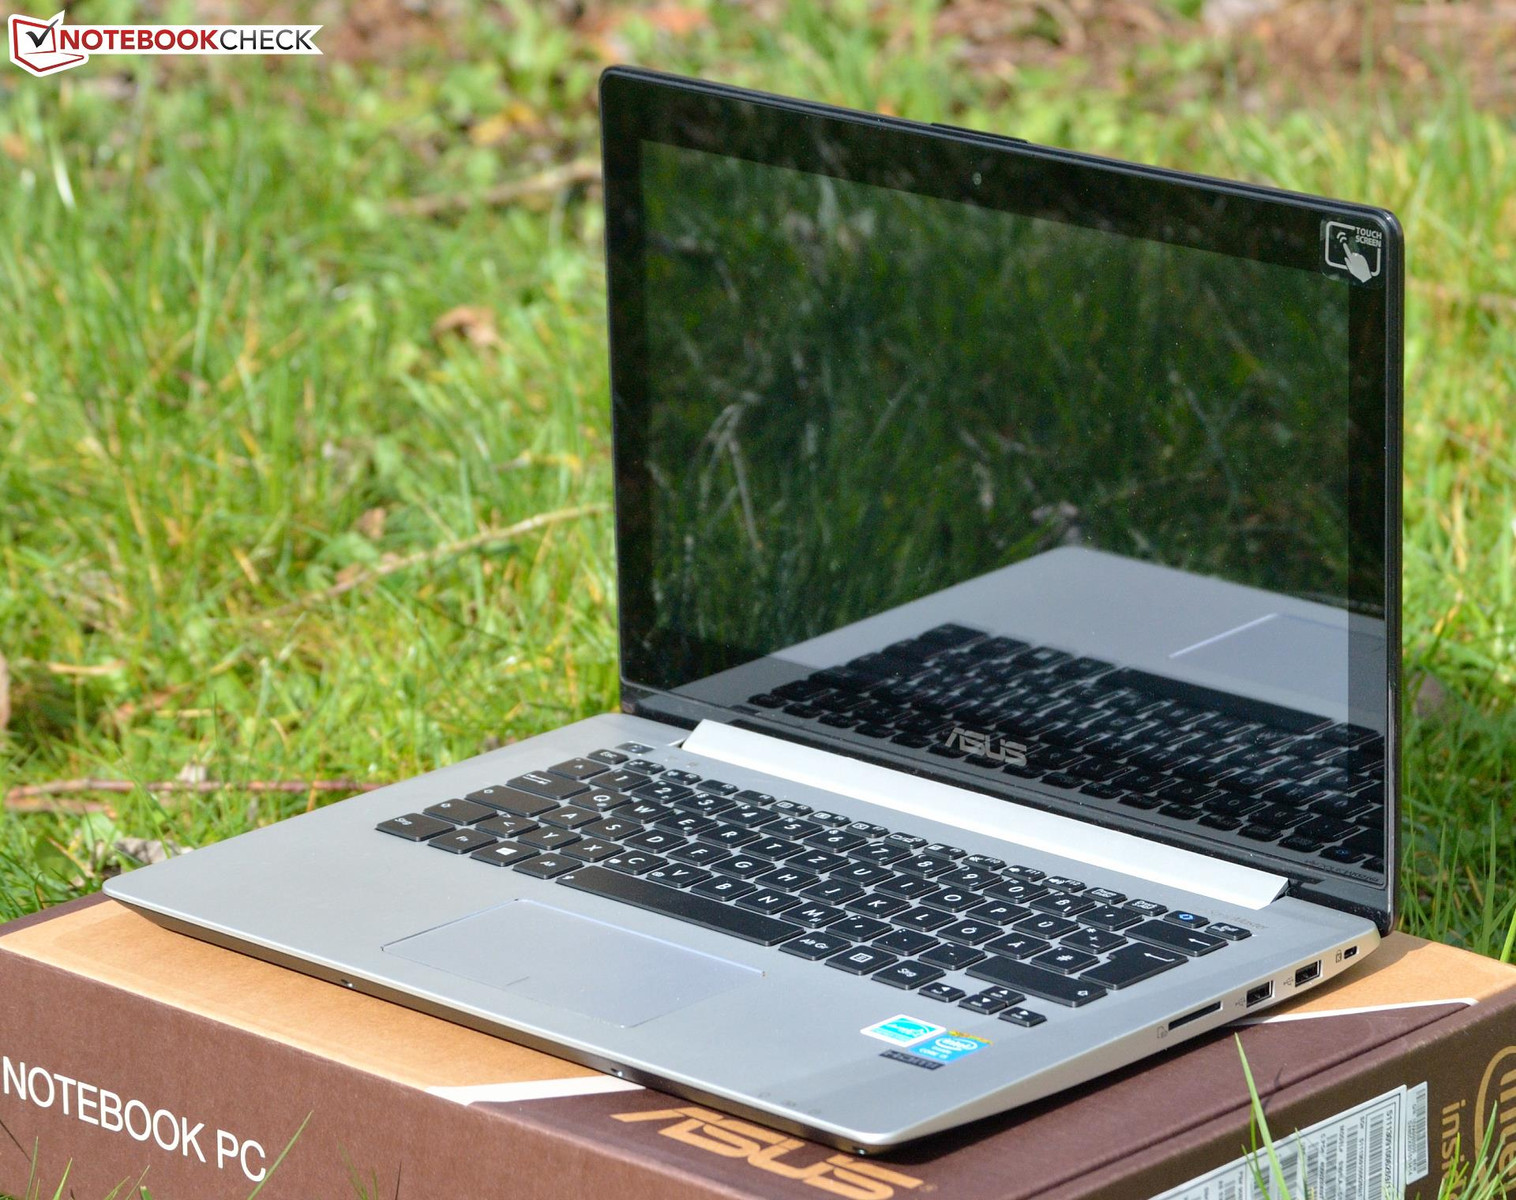 ASUS VIVOBOOK S301LA INTEL WLAN DRIVER DOWNLOAD